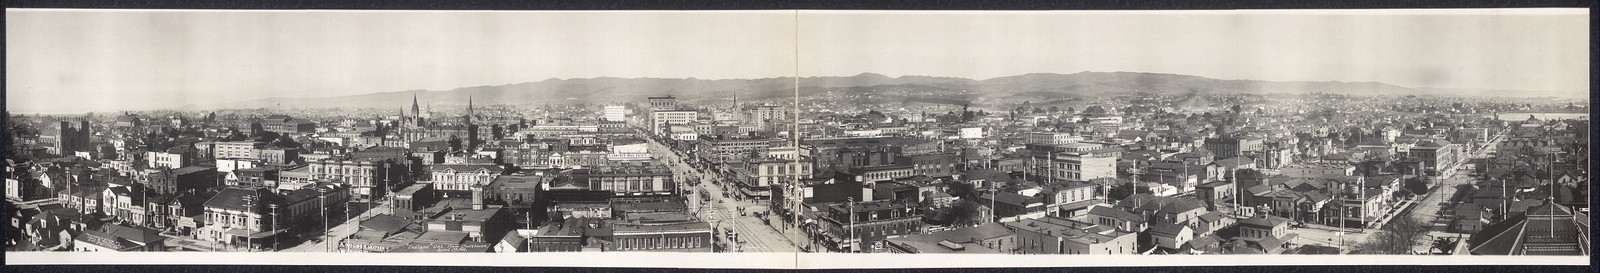 Oakland, Cal. from Courthouse, April 1st, 1908